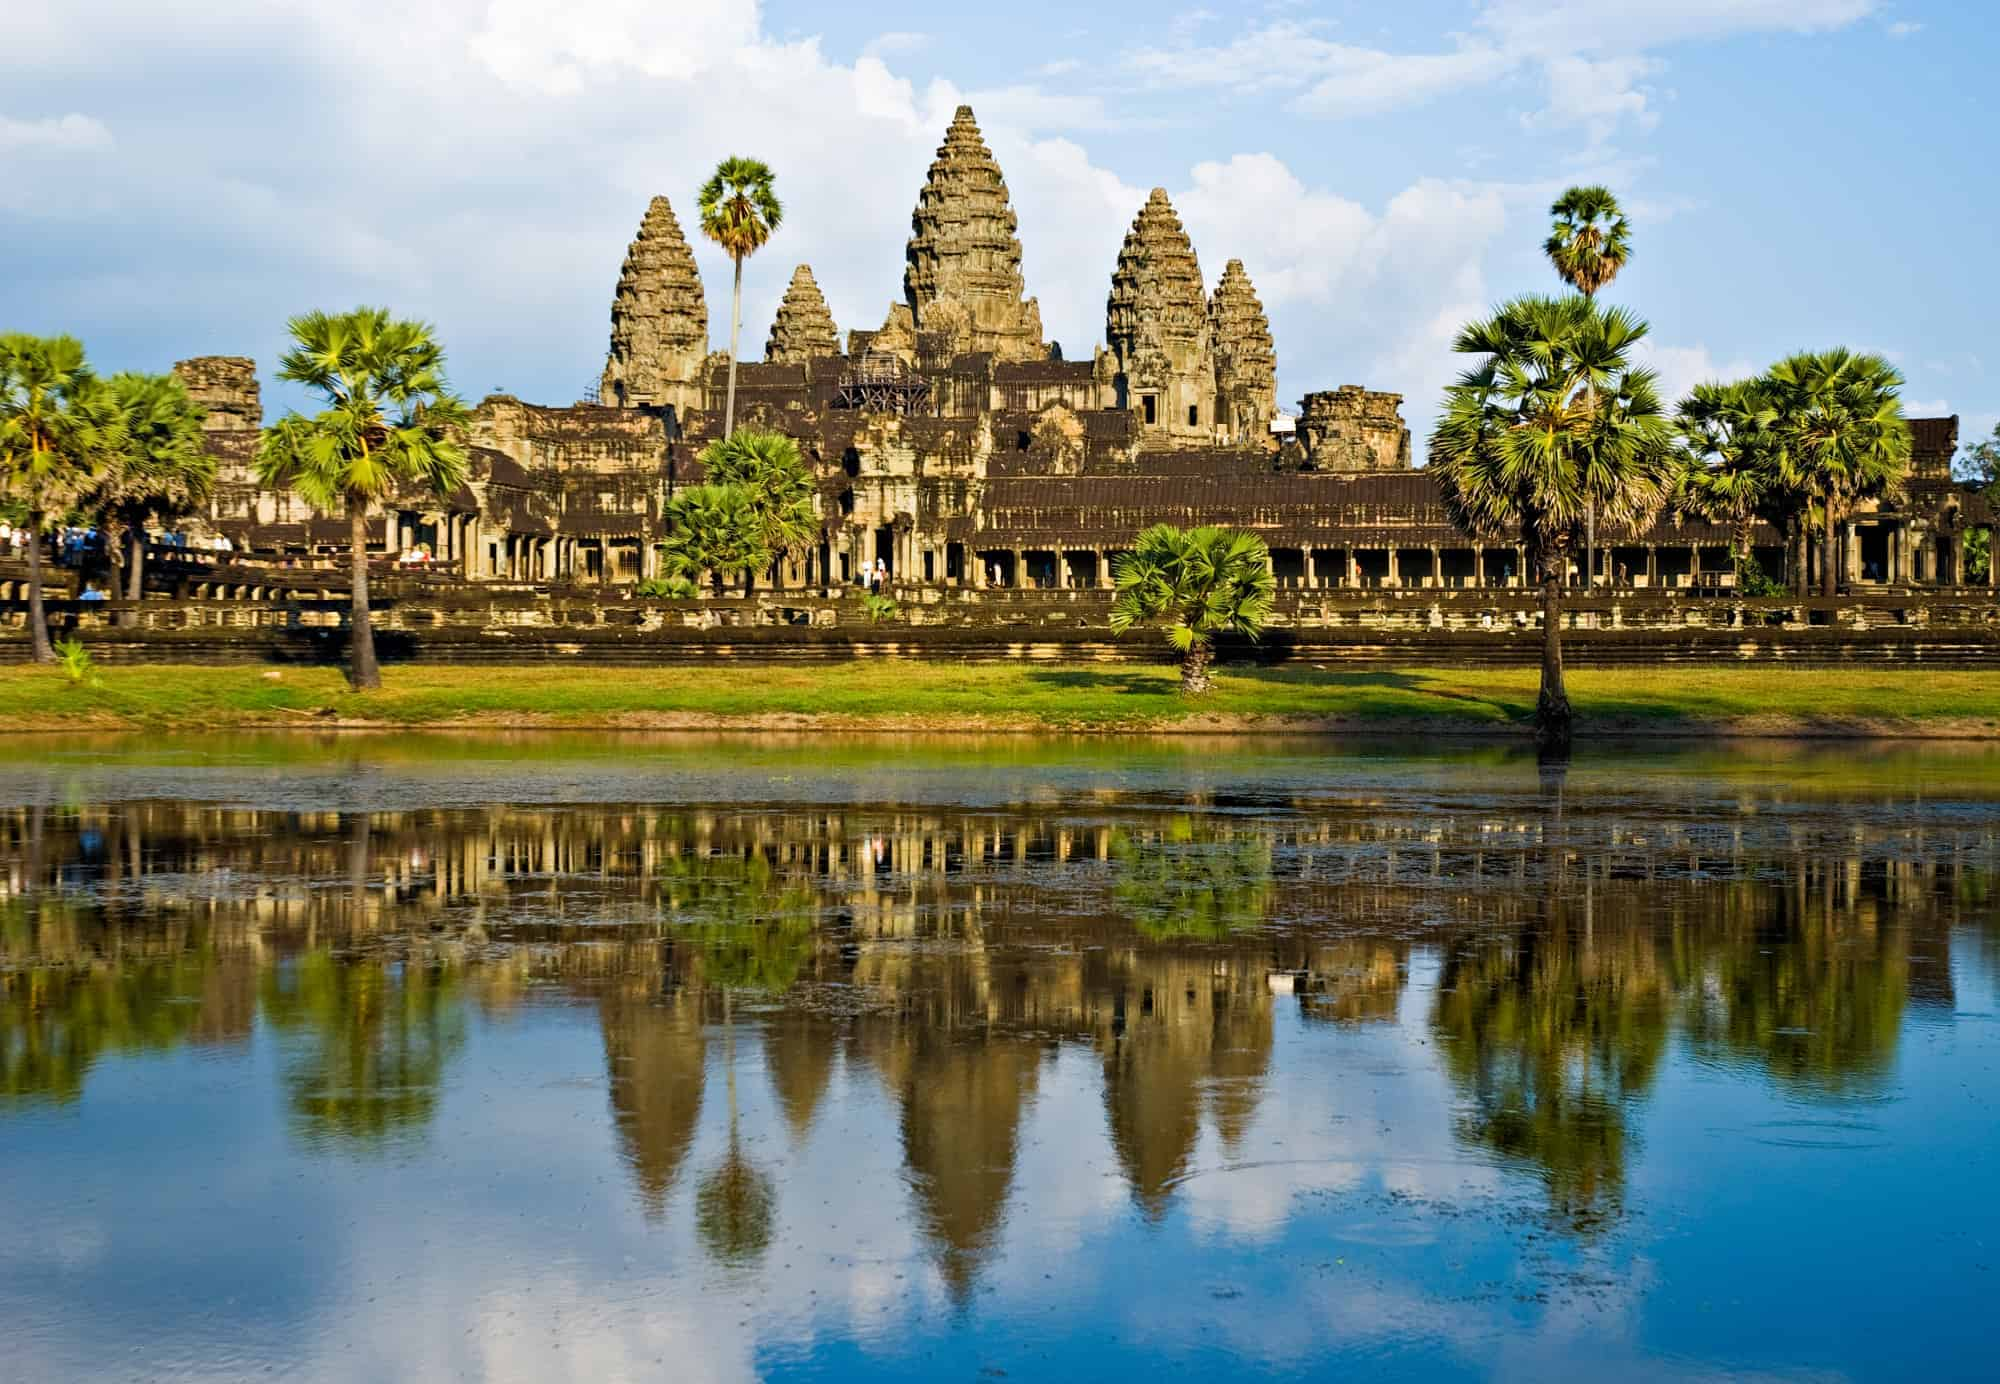 Cambodia: Angkor Archeological Park Through the Eyes of Young Kids